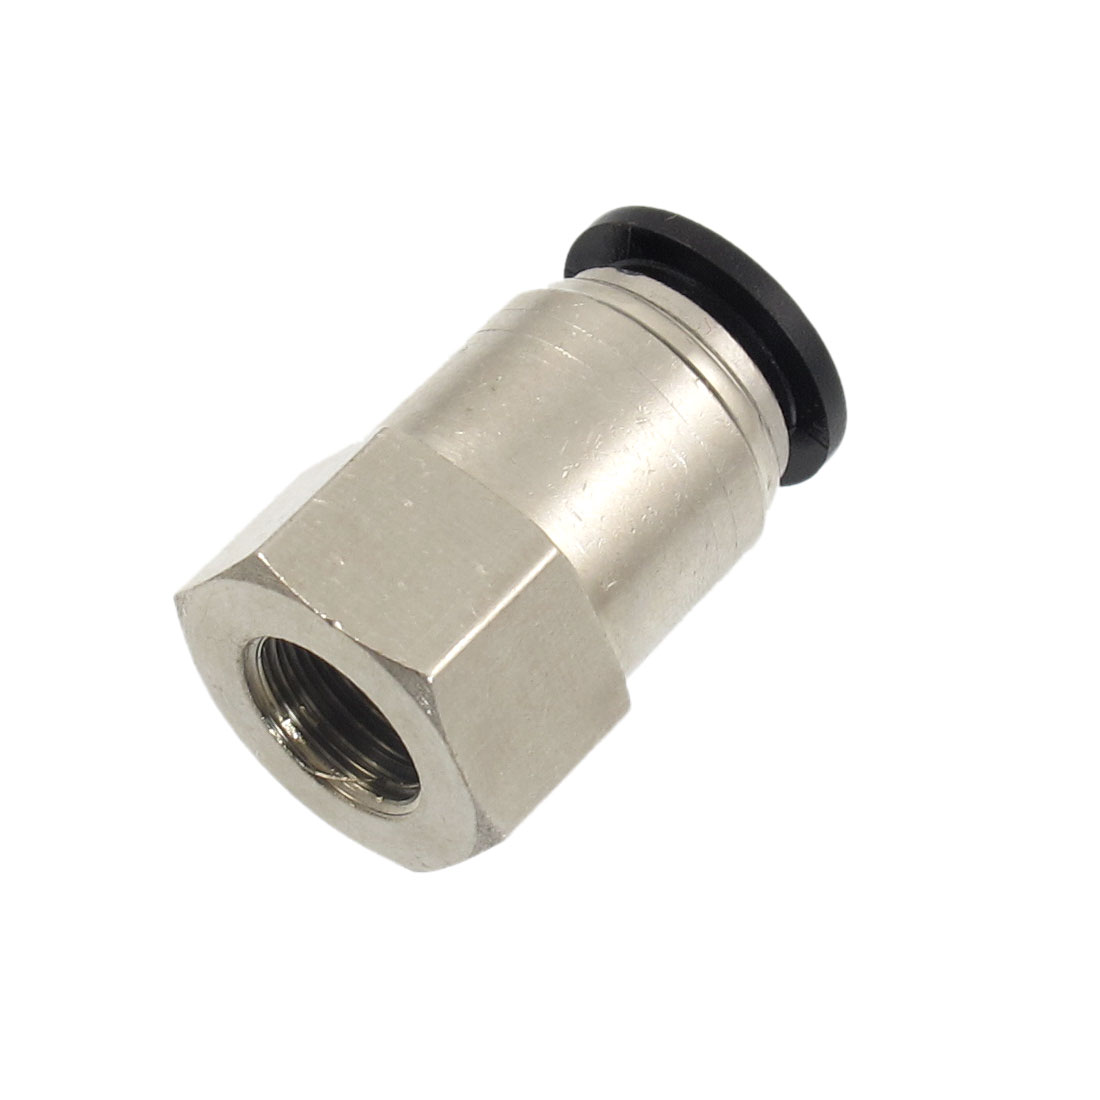 "1/4"" PT Female Thread 12mm Push In Joint Pneumatic Quick Fitting"